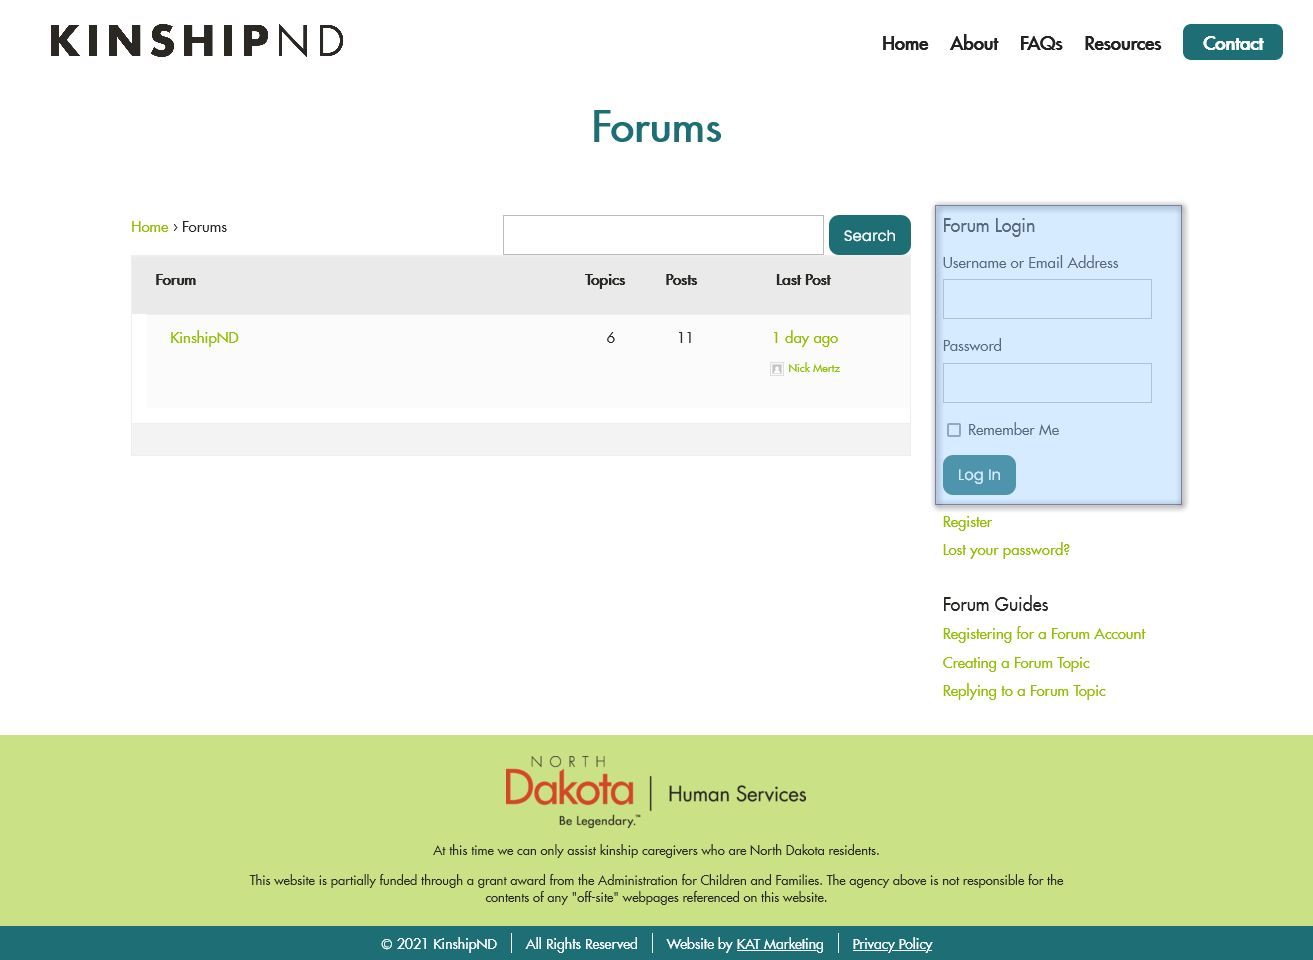 Logging Into the Forum - First Option: Login Form in Sidebar